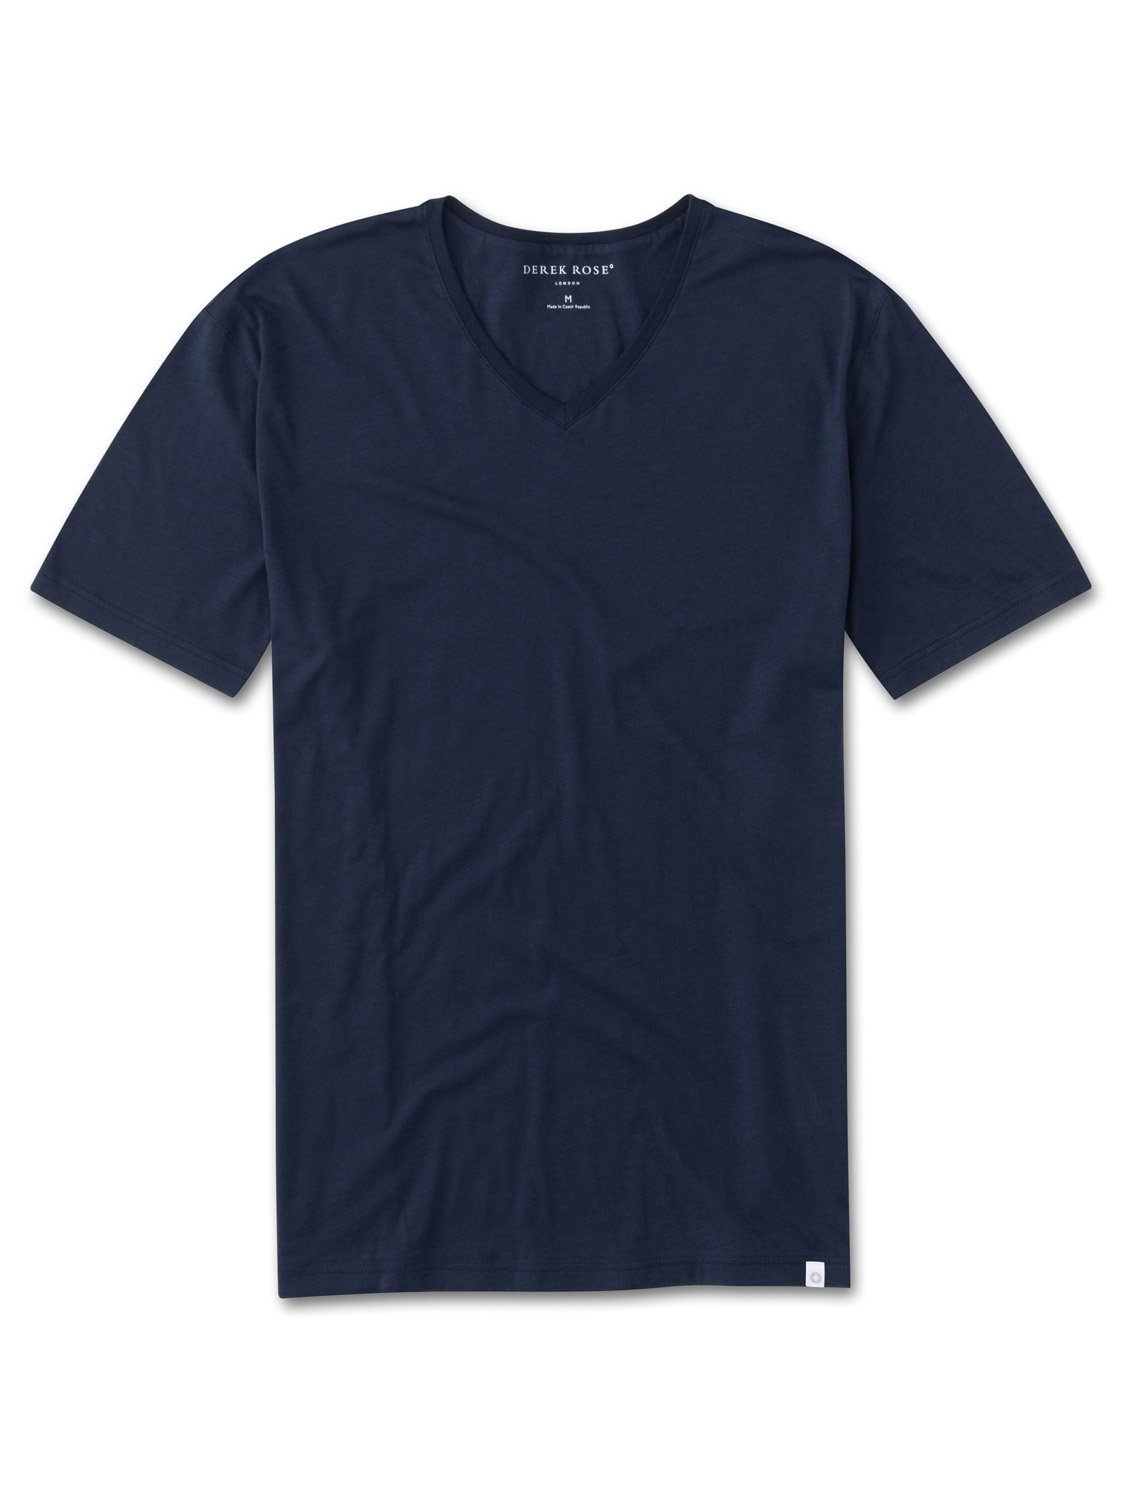 Men's Short Sleeve V-Neck T-Shirt Riley Pima Cotton Navy